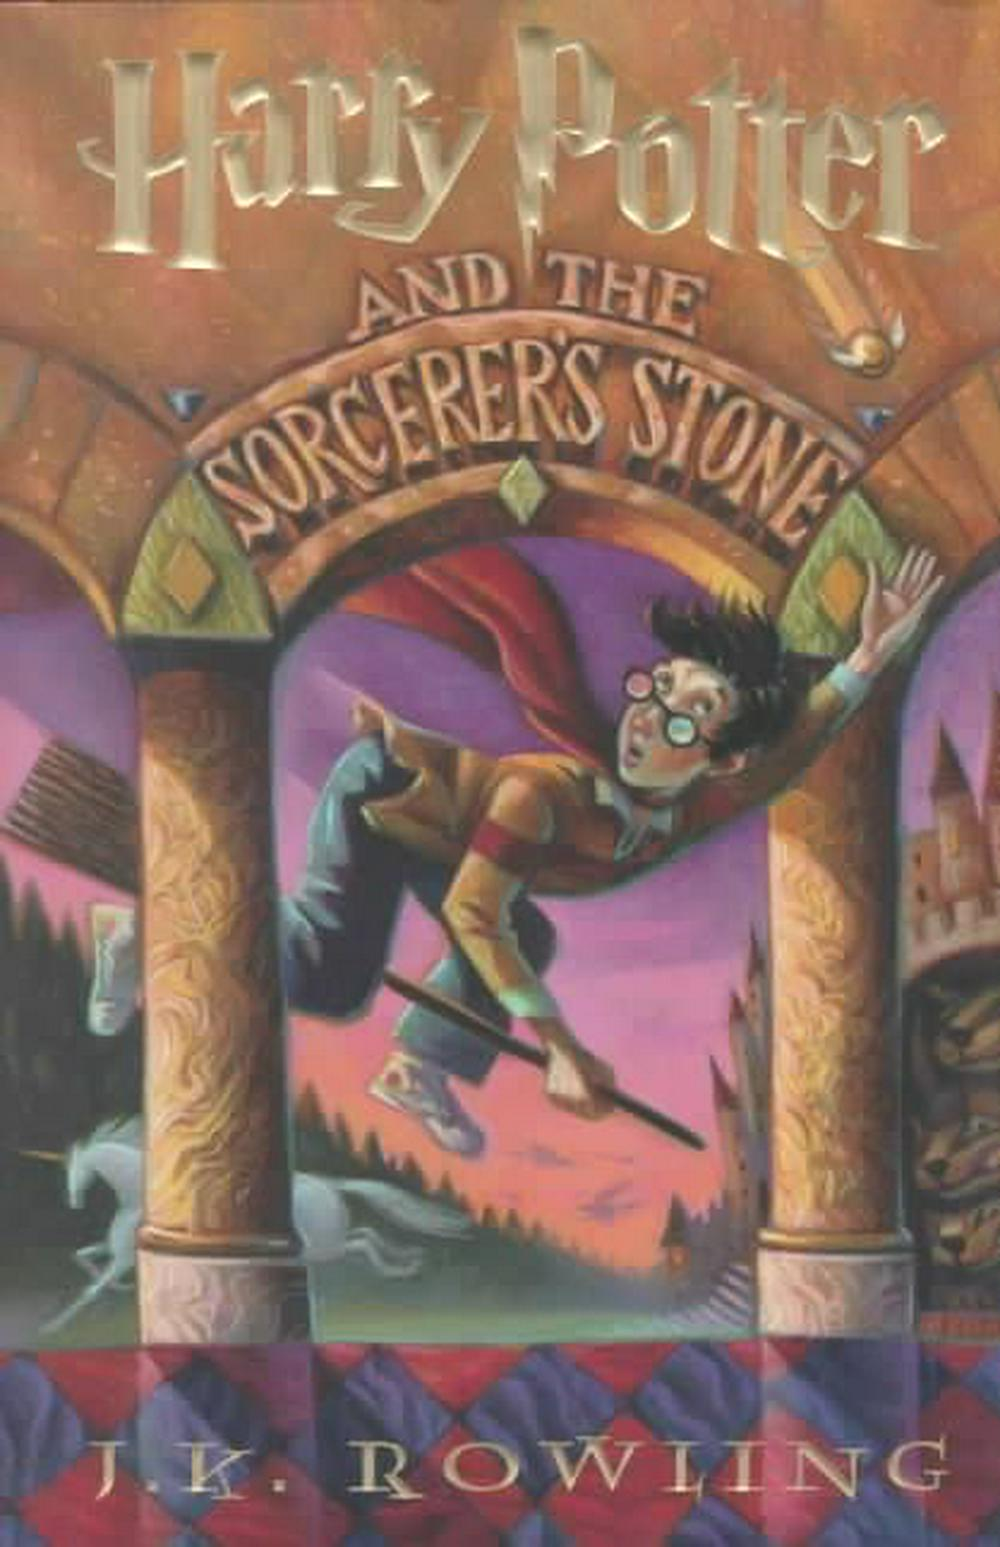 Cover Art for Harry Potter and the Sorcerer's Stone, ISBN: 9780786222728